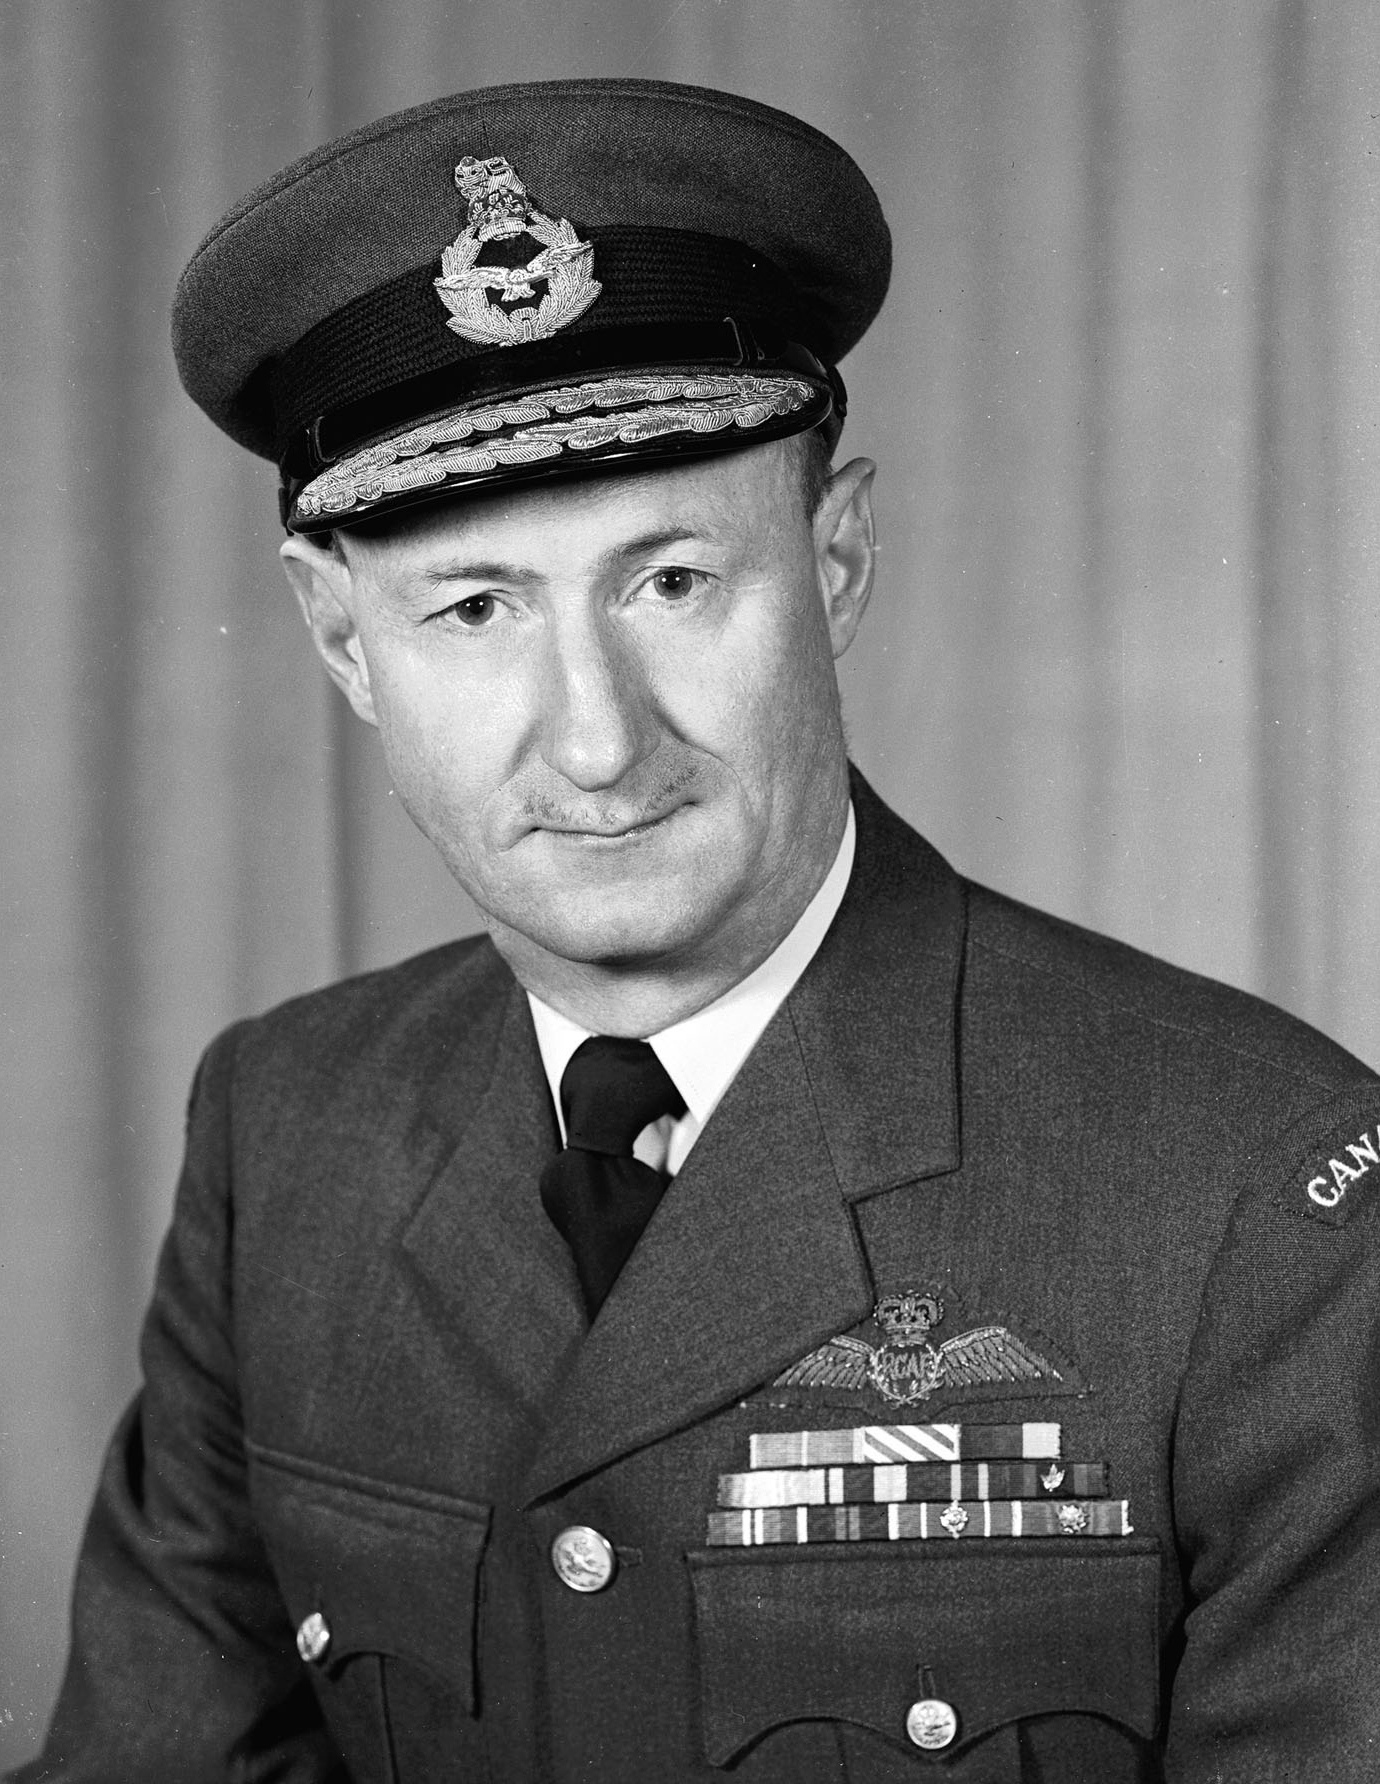 Le commodore de l'air Len Birchall, photographié le 30 mai 1961. PHOTO : Archives du MDN, PL-133463